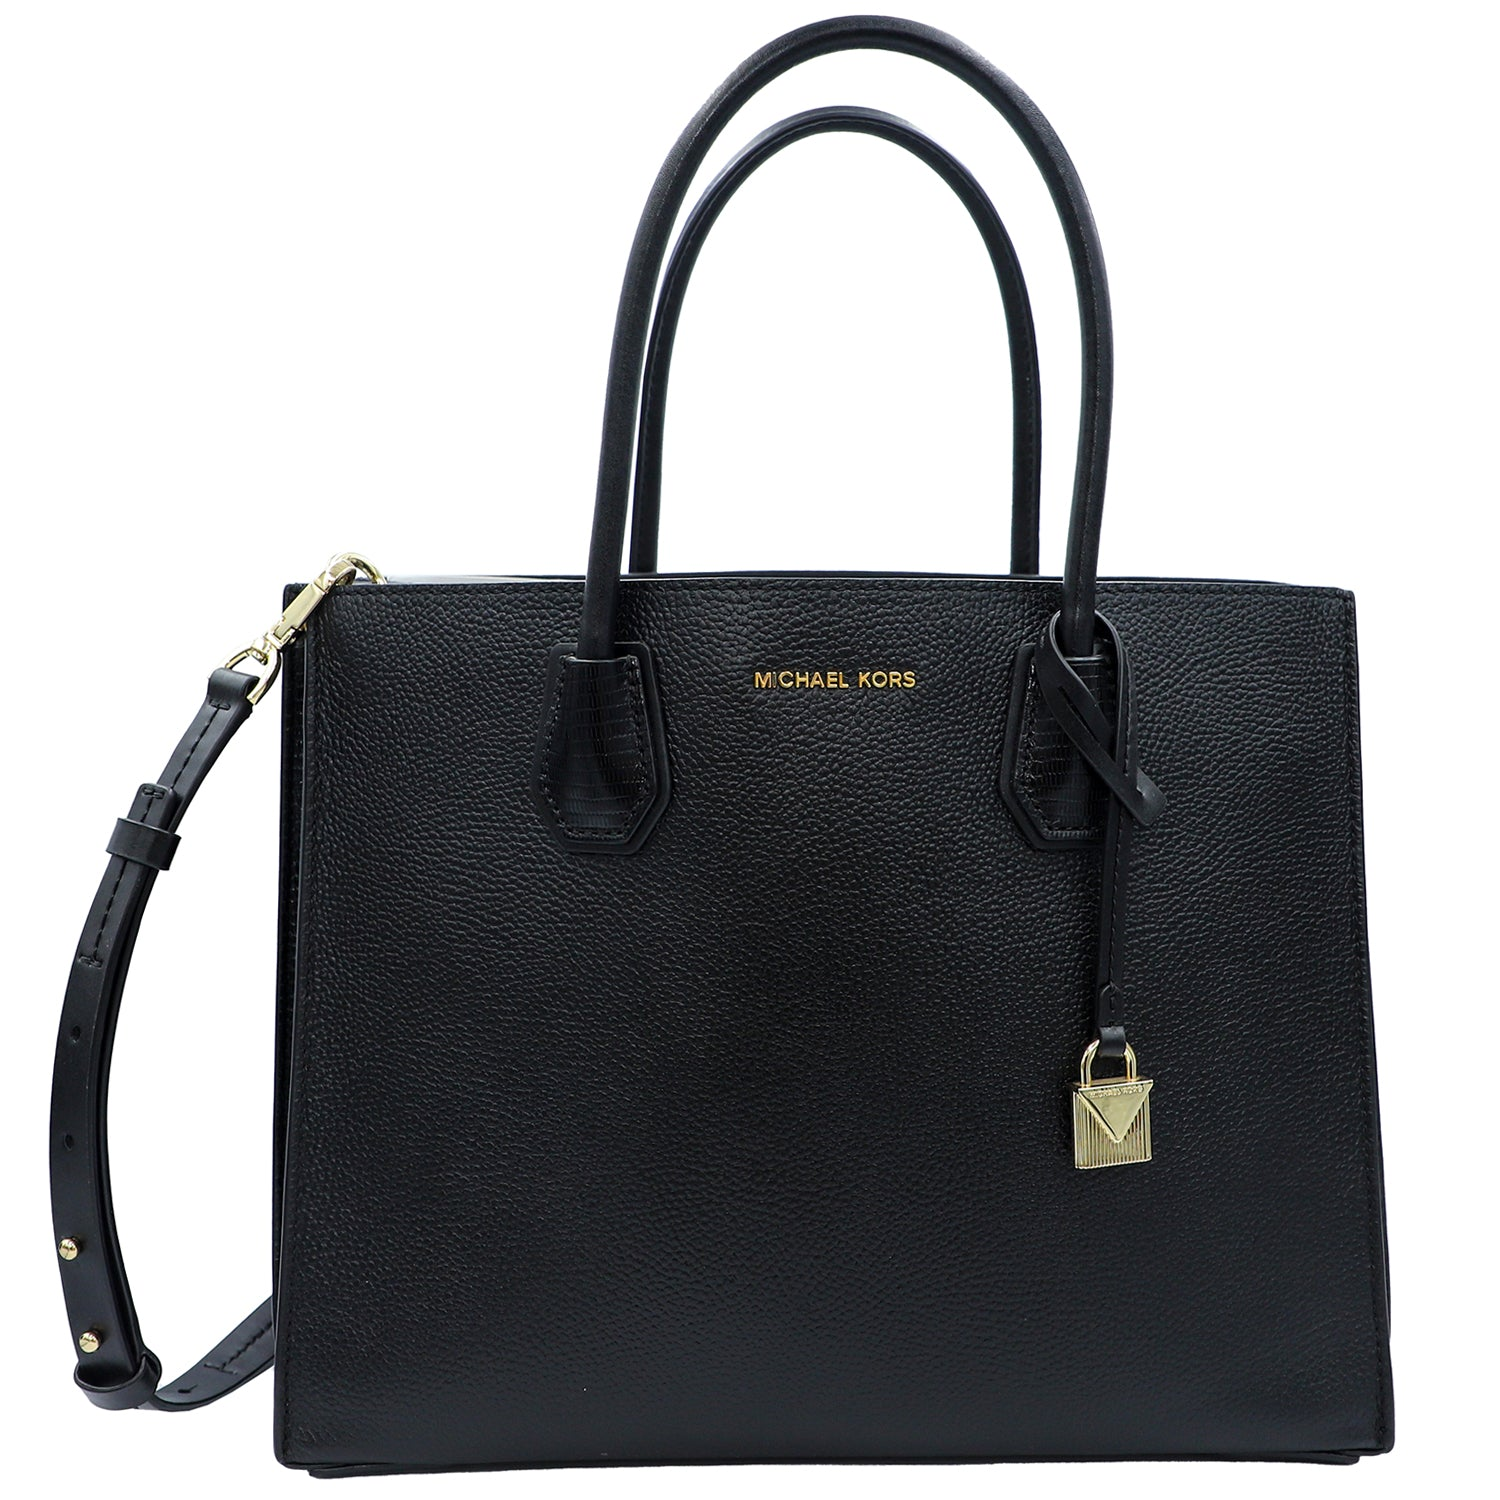 Mercer Accordian Leather Tote Bag | Shop MICHAEL KORS Online India